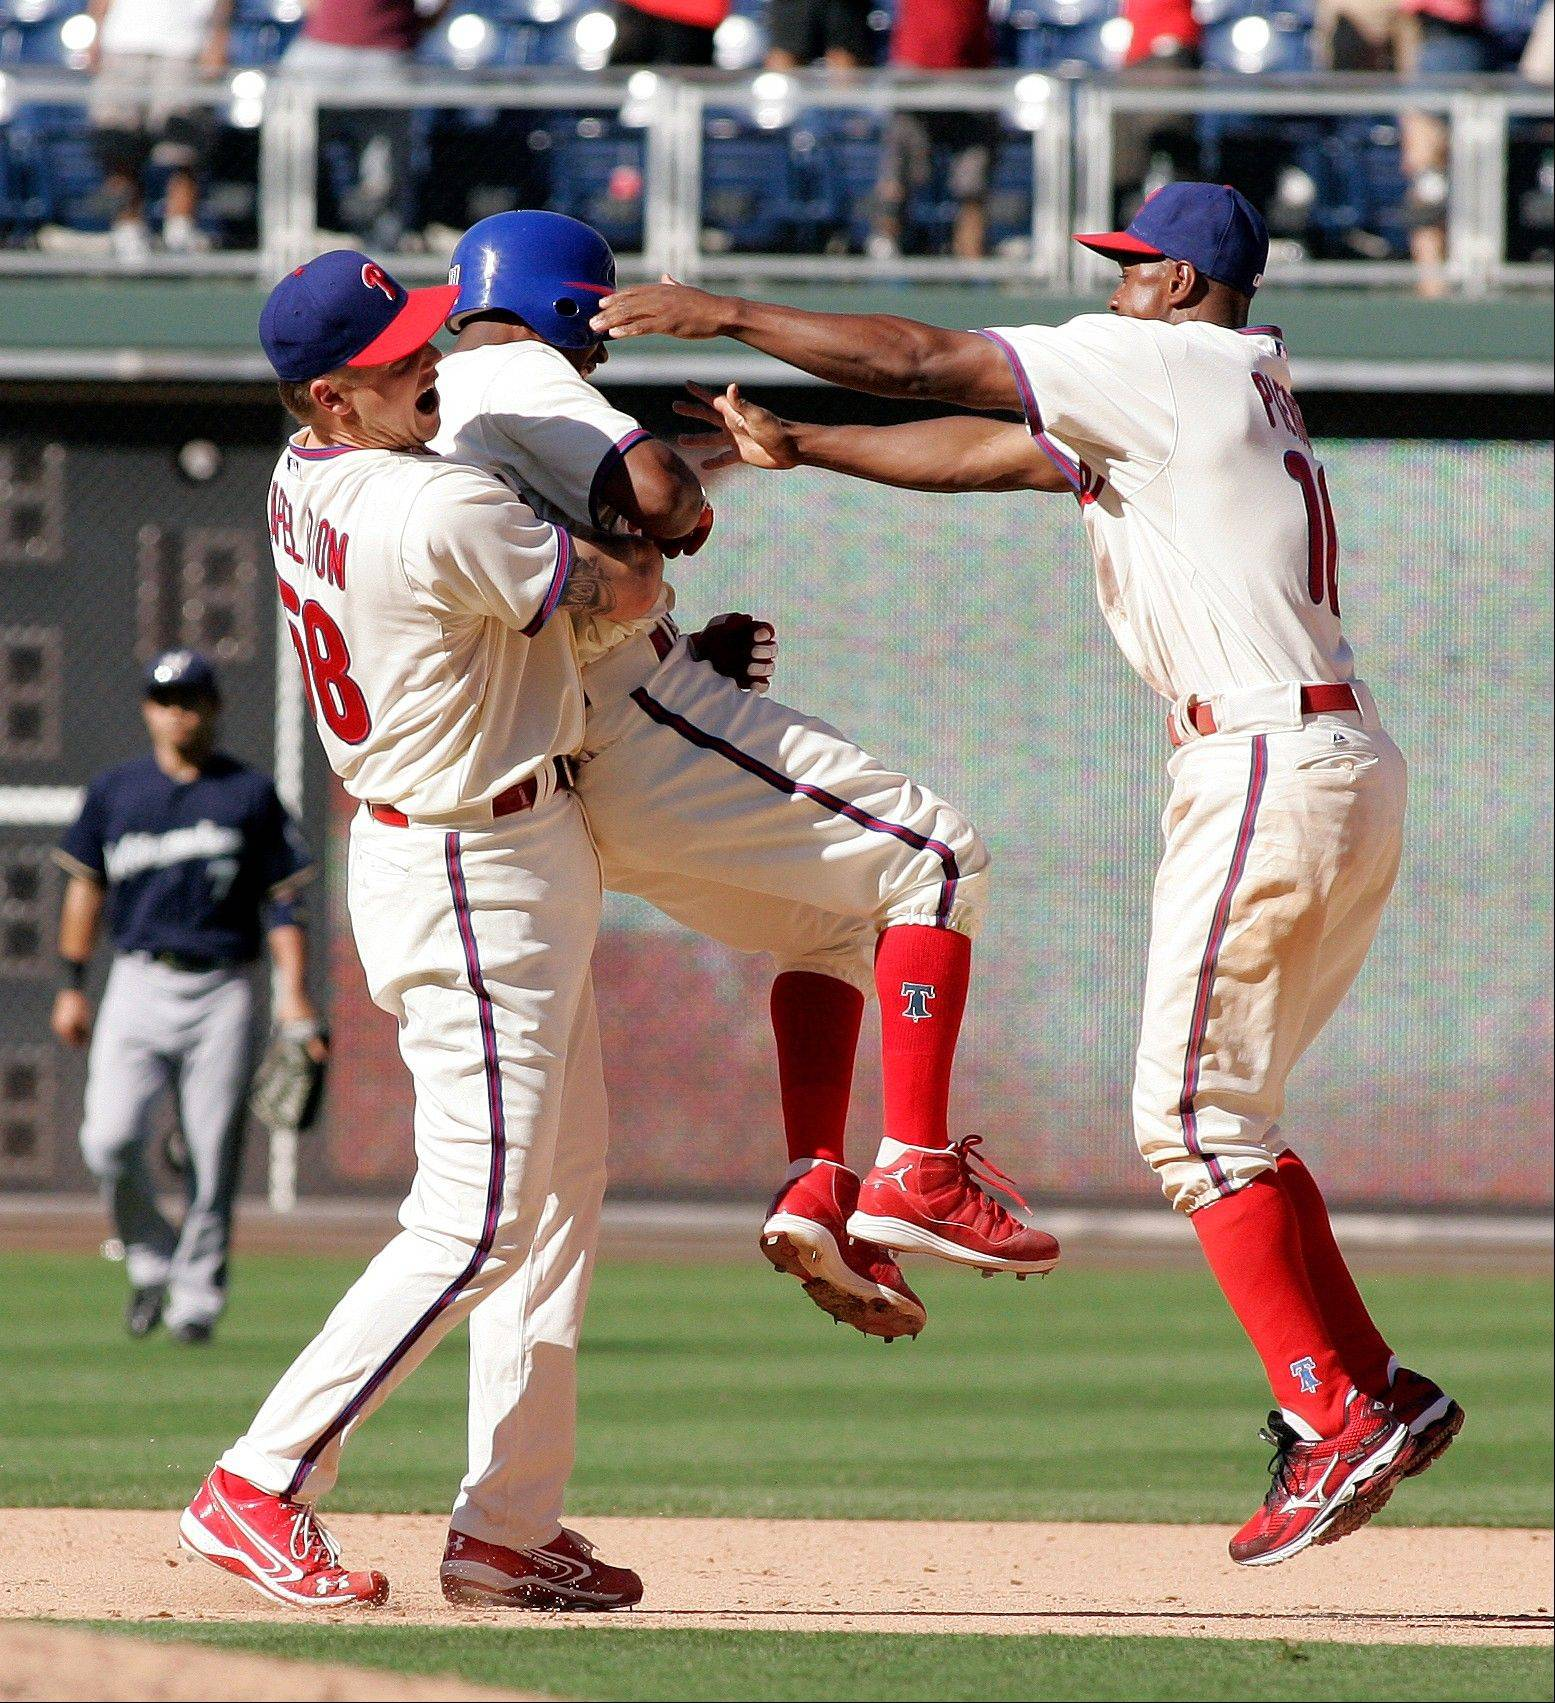 Philadelphia Phillies pitcher Jonathan Papelbon, left, lifts teammate Jimmy Rollins up as Juan Pierre, right, joins in to celebrate Rollins� game-winning RBI Wednesday during the 10th inning in Philadelphia. The Phillies beat the Brewers 7-6.